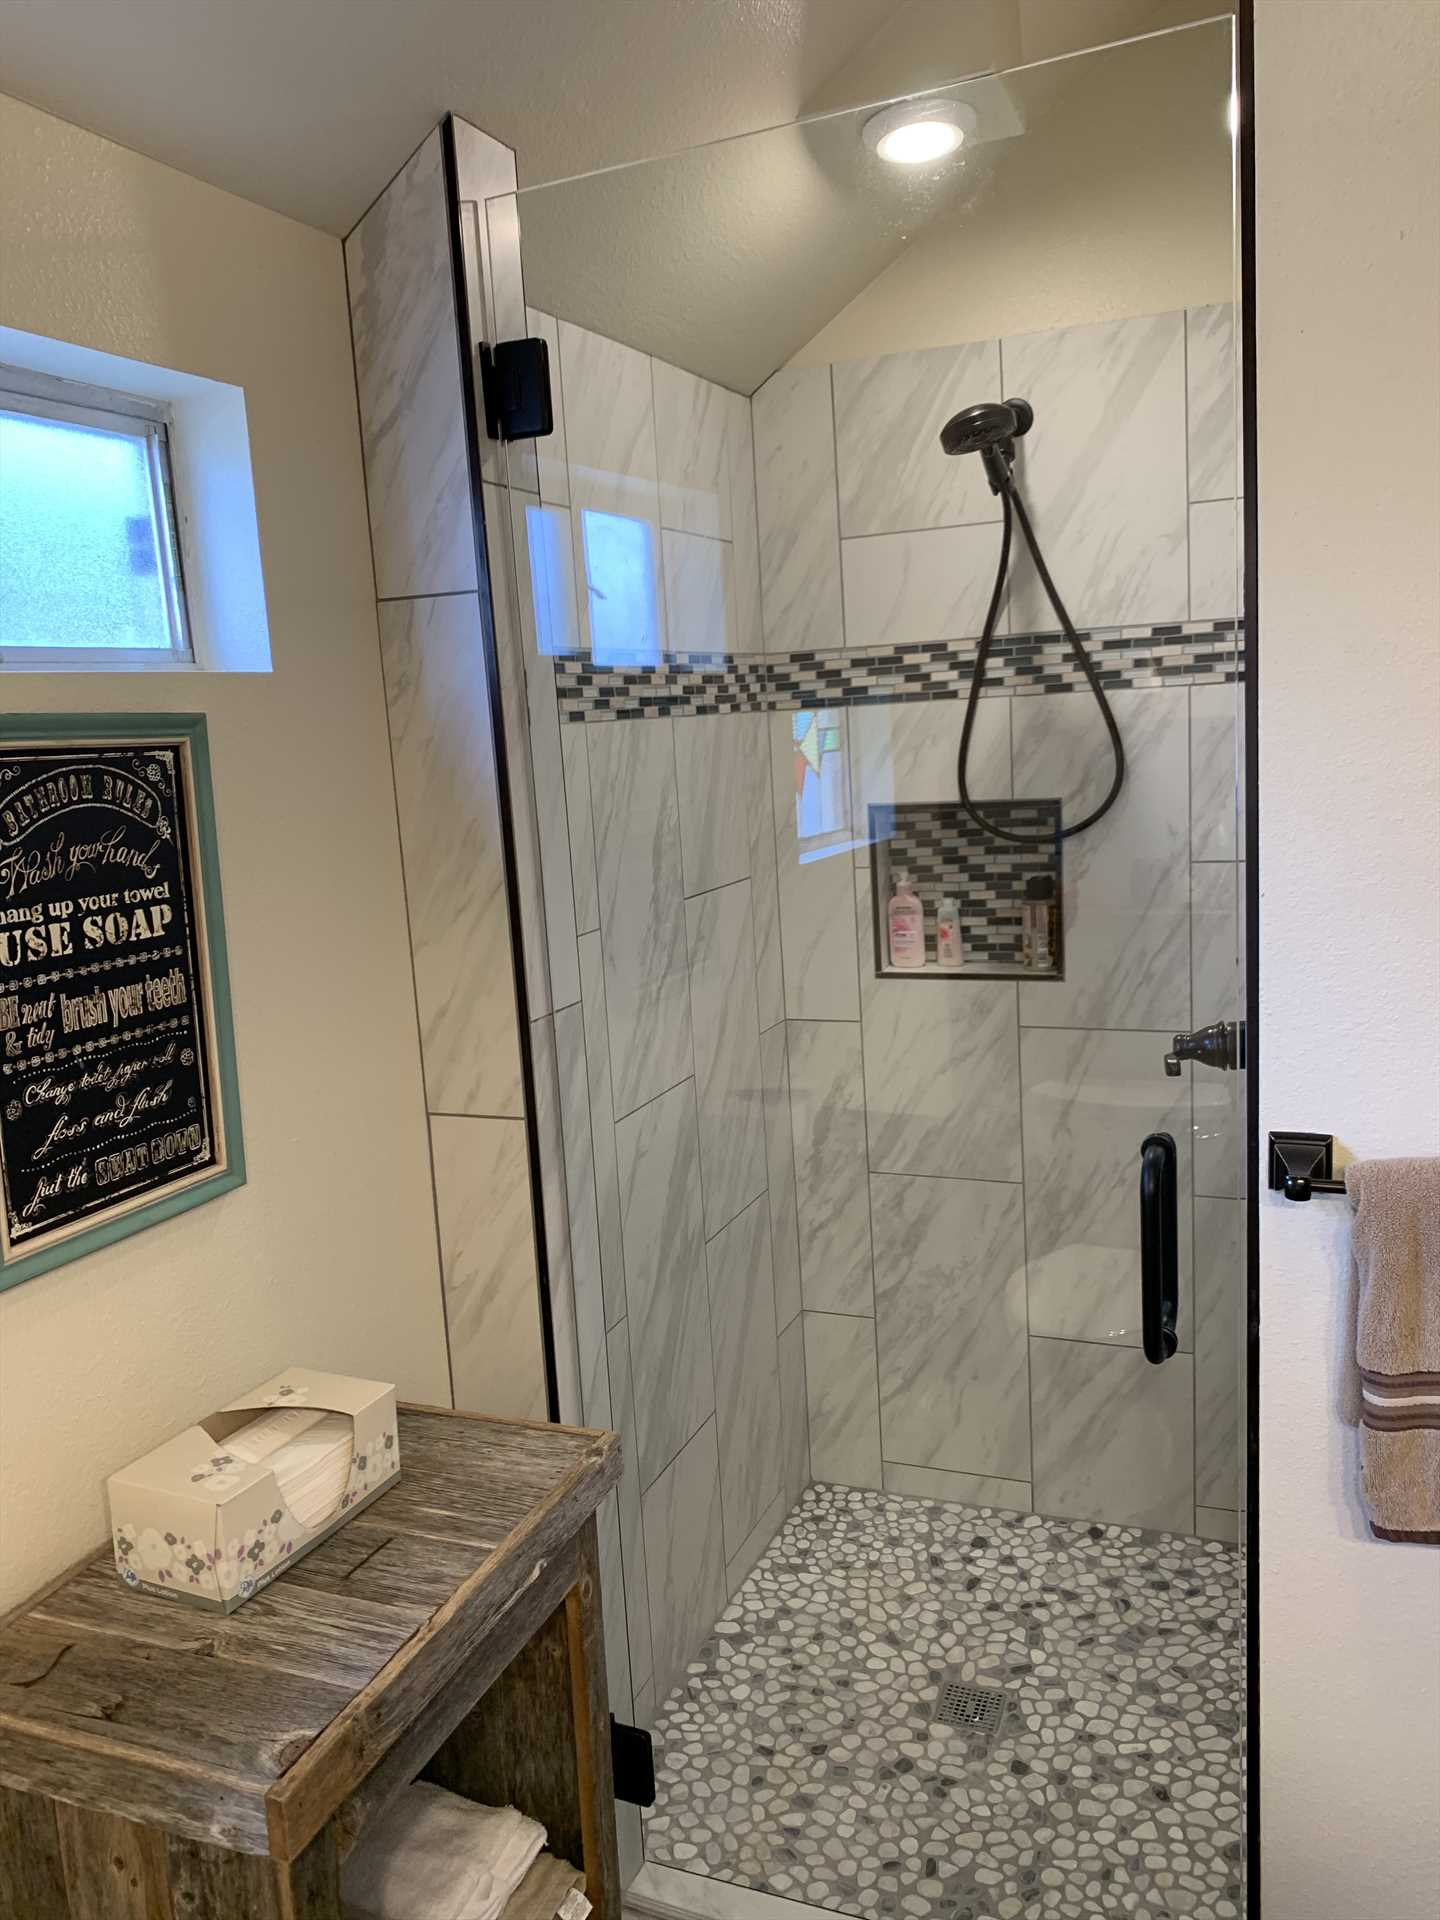 A stylish, tiled shower stall makes cleanup a pleasure!